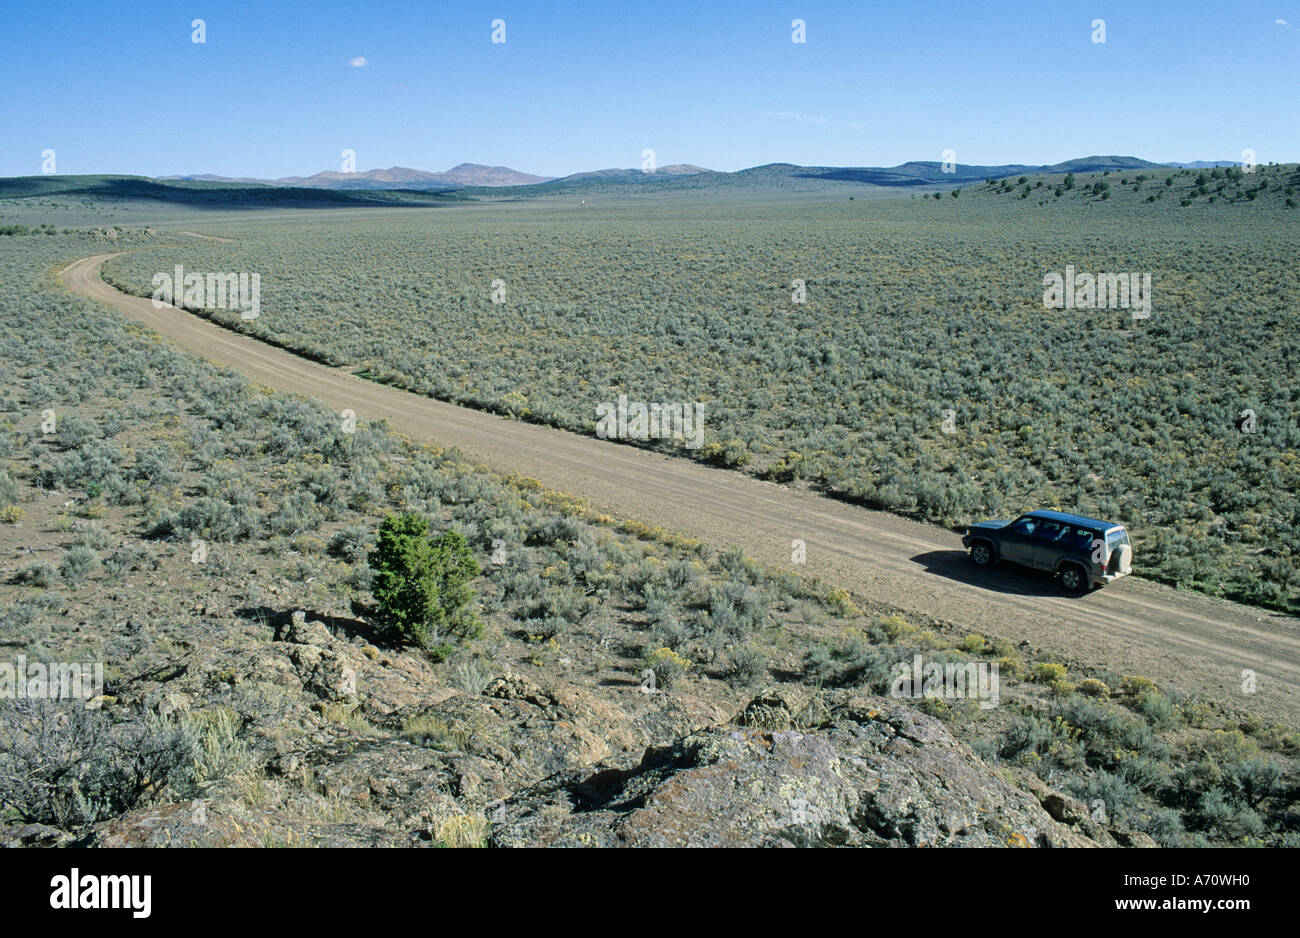 Vehicle on dirt road, historic California Trail, Goose Creek Valley, Nevada, USA - Stock Image